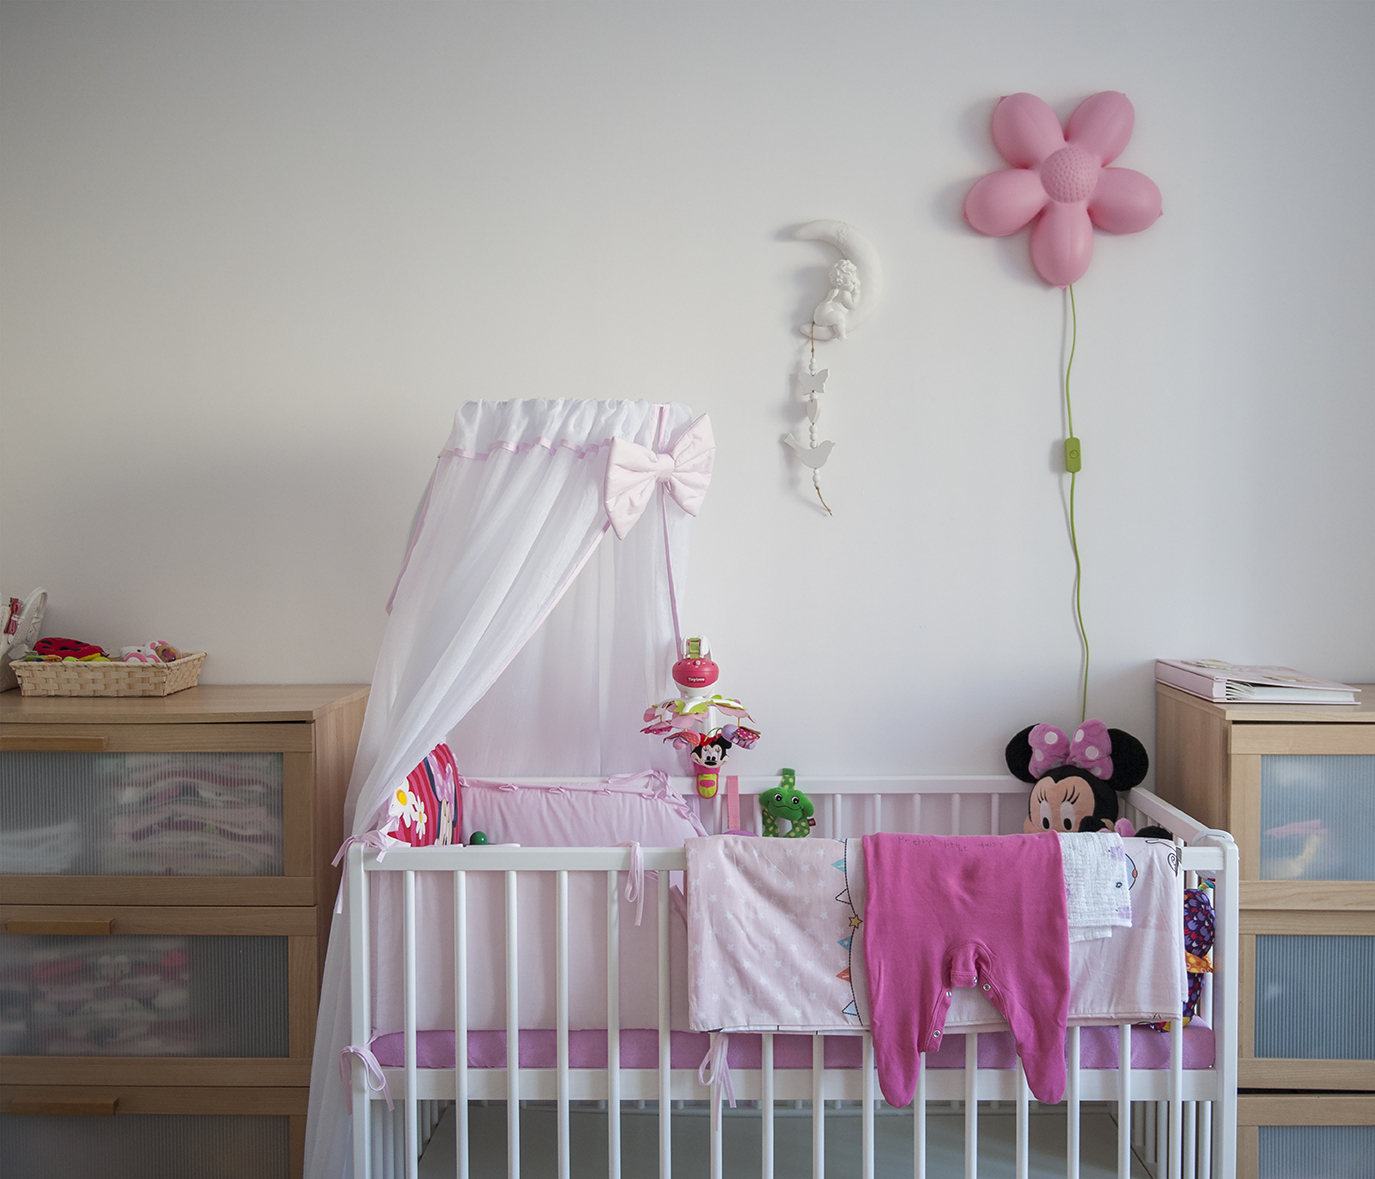 Lorcia's room. Lorcia was part of the family for seven years because Magdalena could not conceive. A year ago she gave birth to a baby boy. The doll now safely stored in a cupboard is no longer needed - yet fulfilled her therapeutic purpose